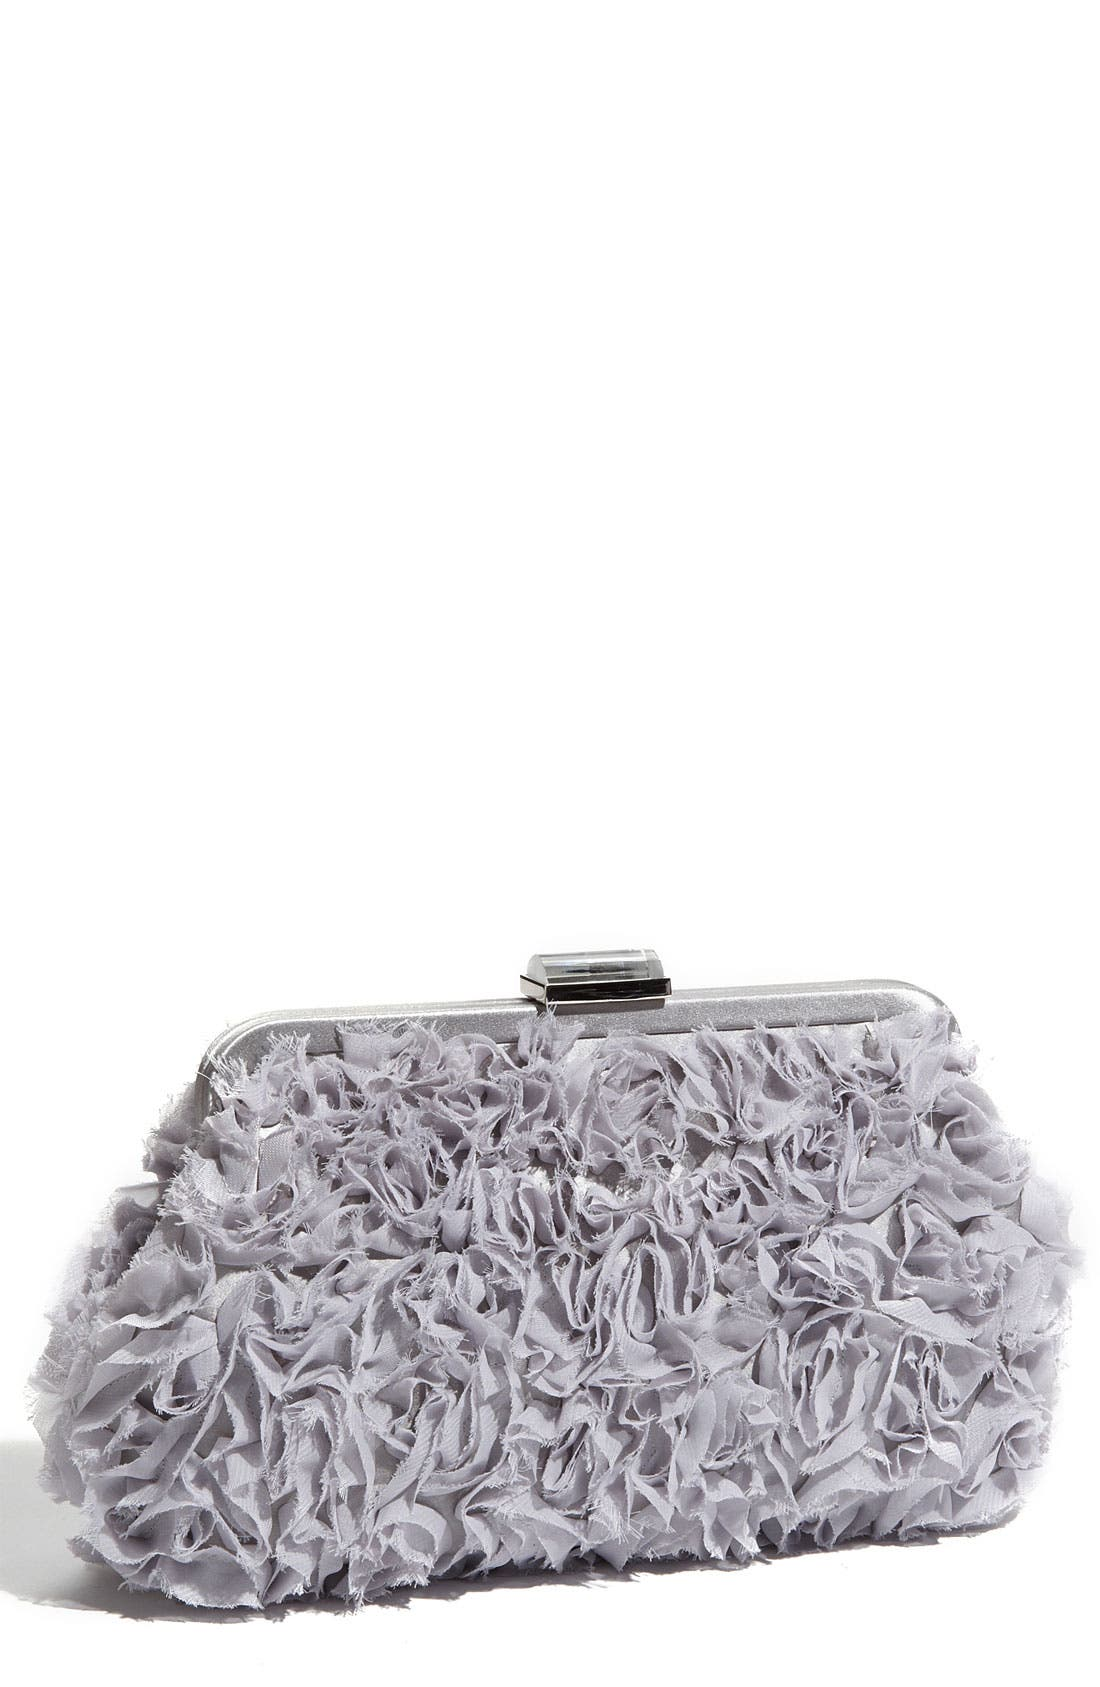 Alternate Image 1 Selected - Franchi 'Evita' Ruffle Frame Clutch